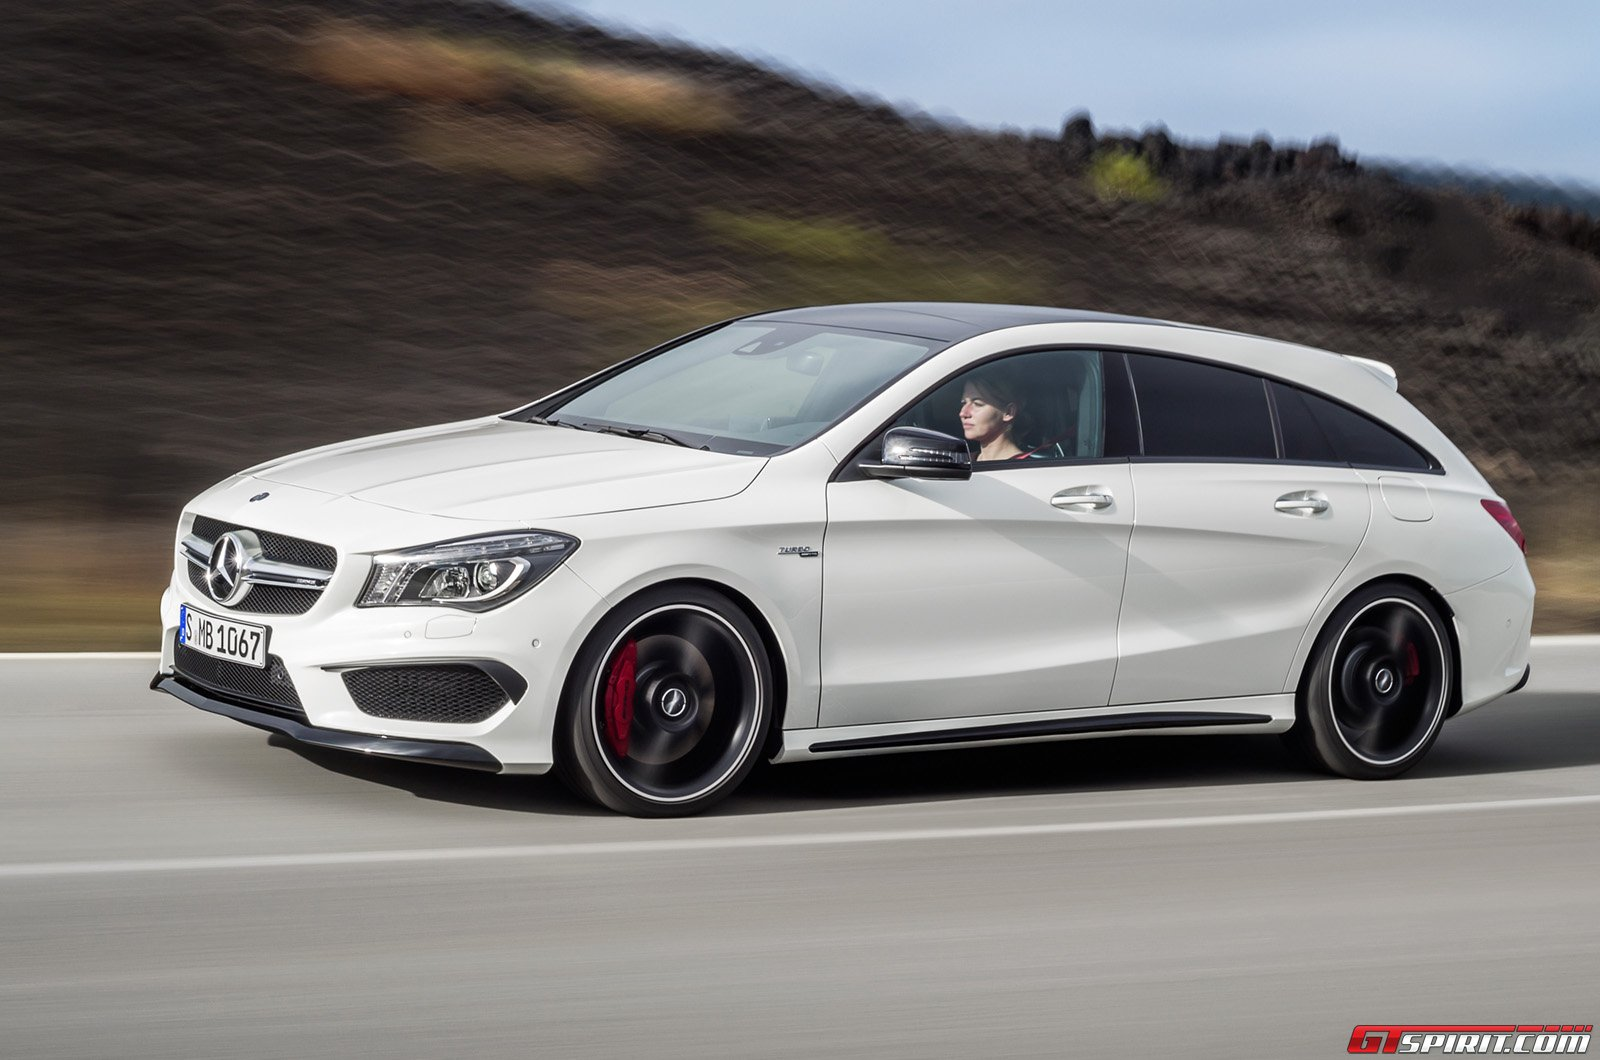 Mercedes Benz Cla Shooting Brake Prices Revealed Gtspirit